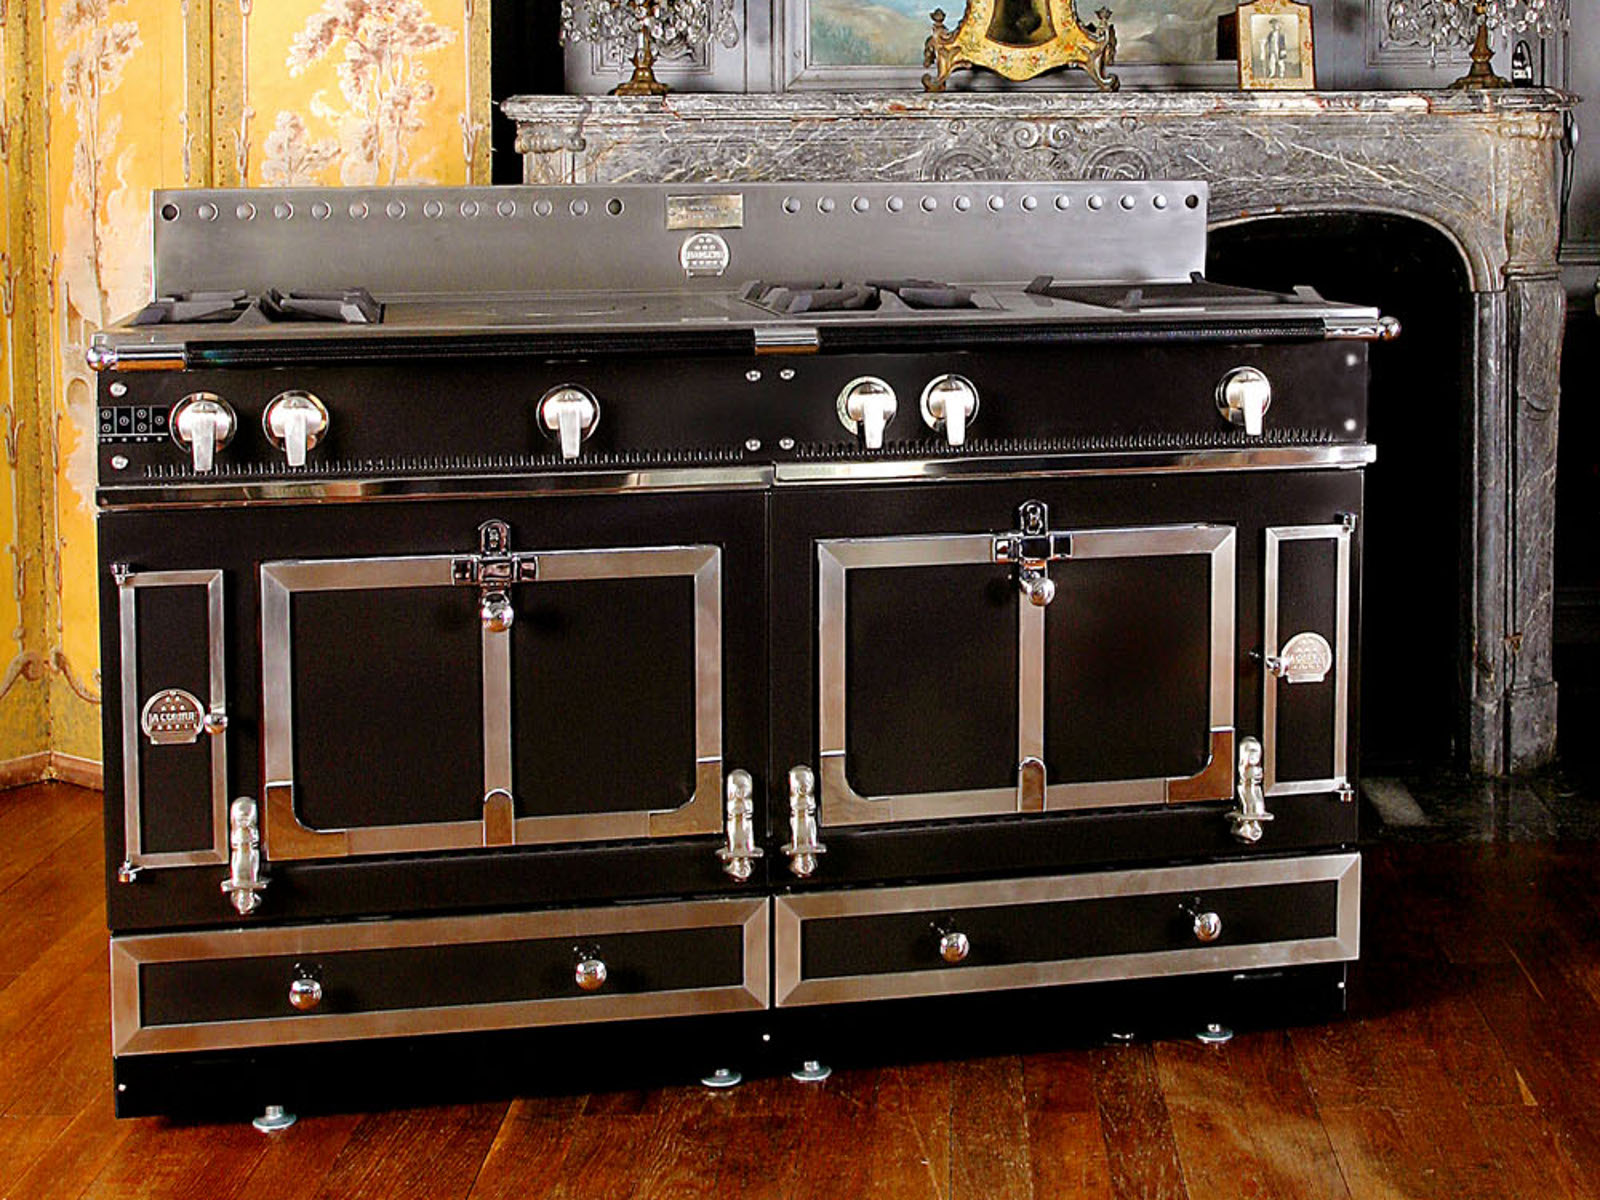 stainless steel cooker ch teau 150 by la cornue. Black Bedroom Furniture Sets. Home Design Ideas